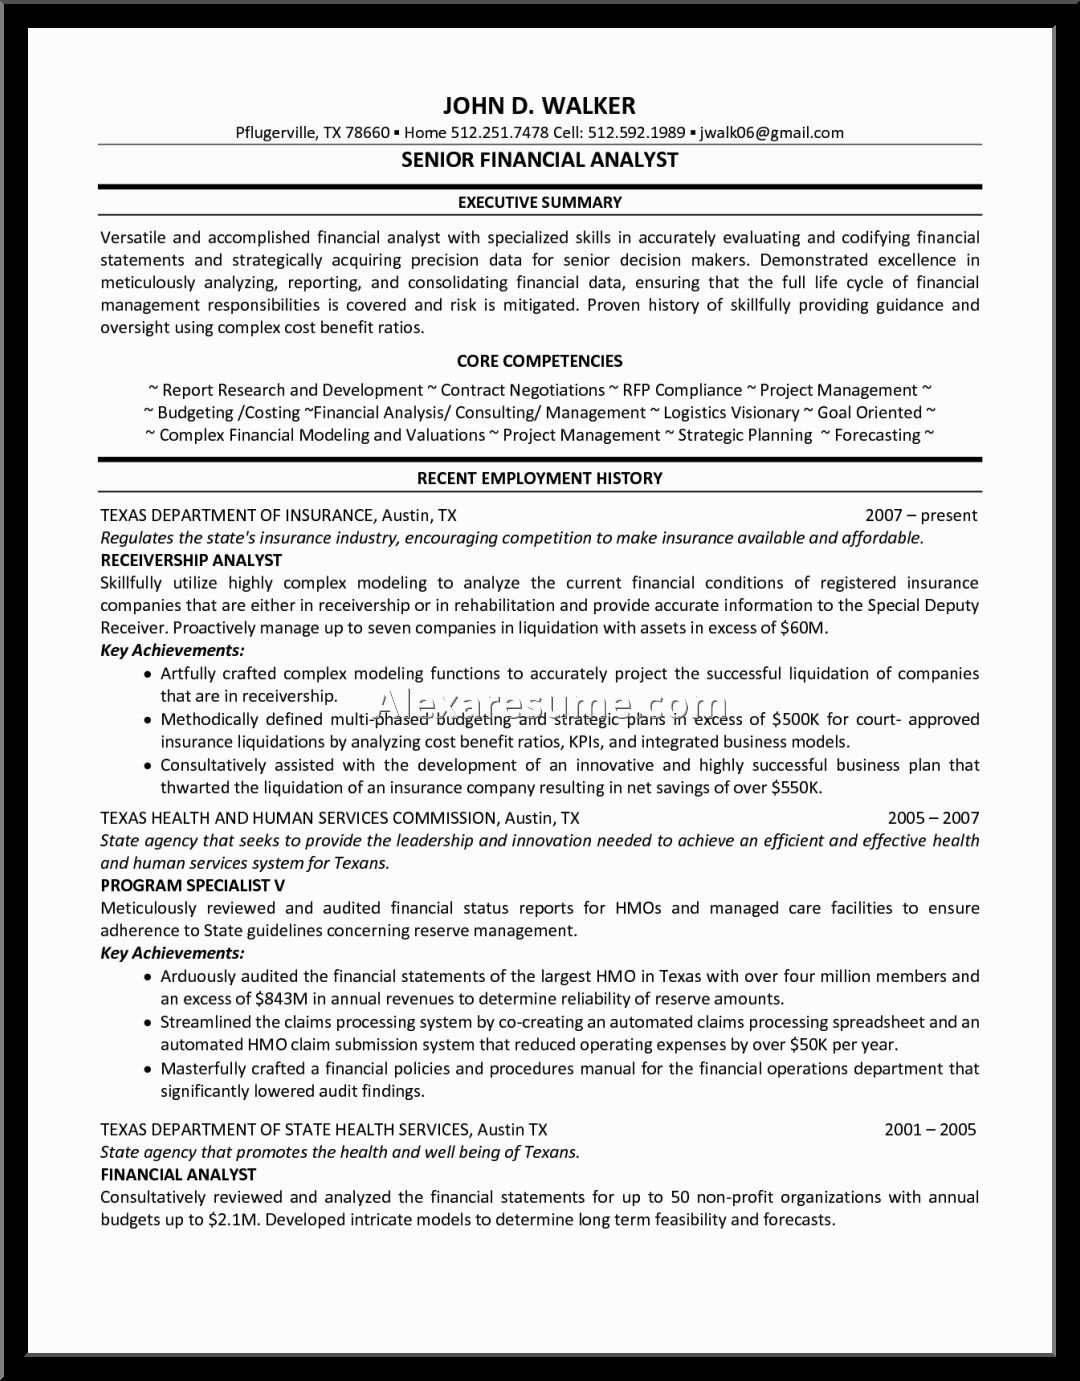 Senior Financial Analyst Resume Analyst Resume Financial Sample Formatting Ideas Mistakes Faq